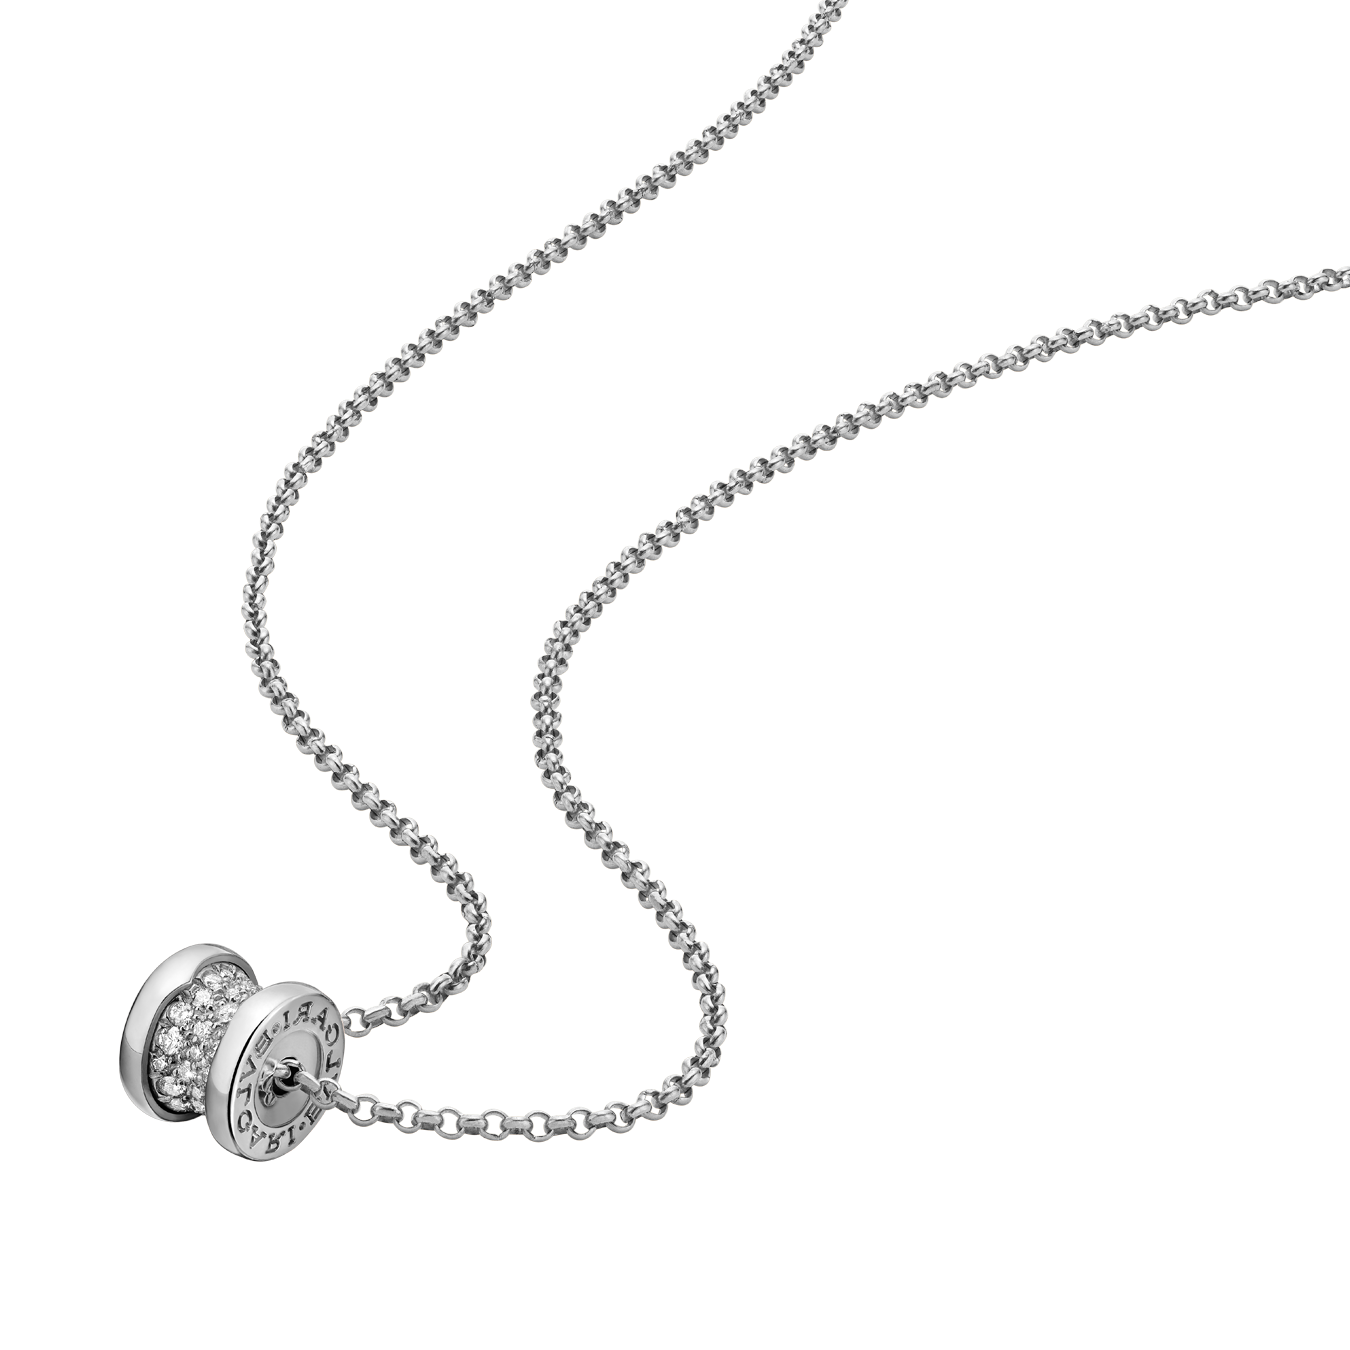 Bvlgari B.ZERO1 replica necklace white gold paved with diamonds pendant